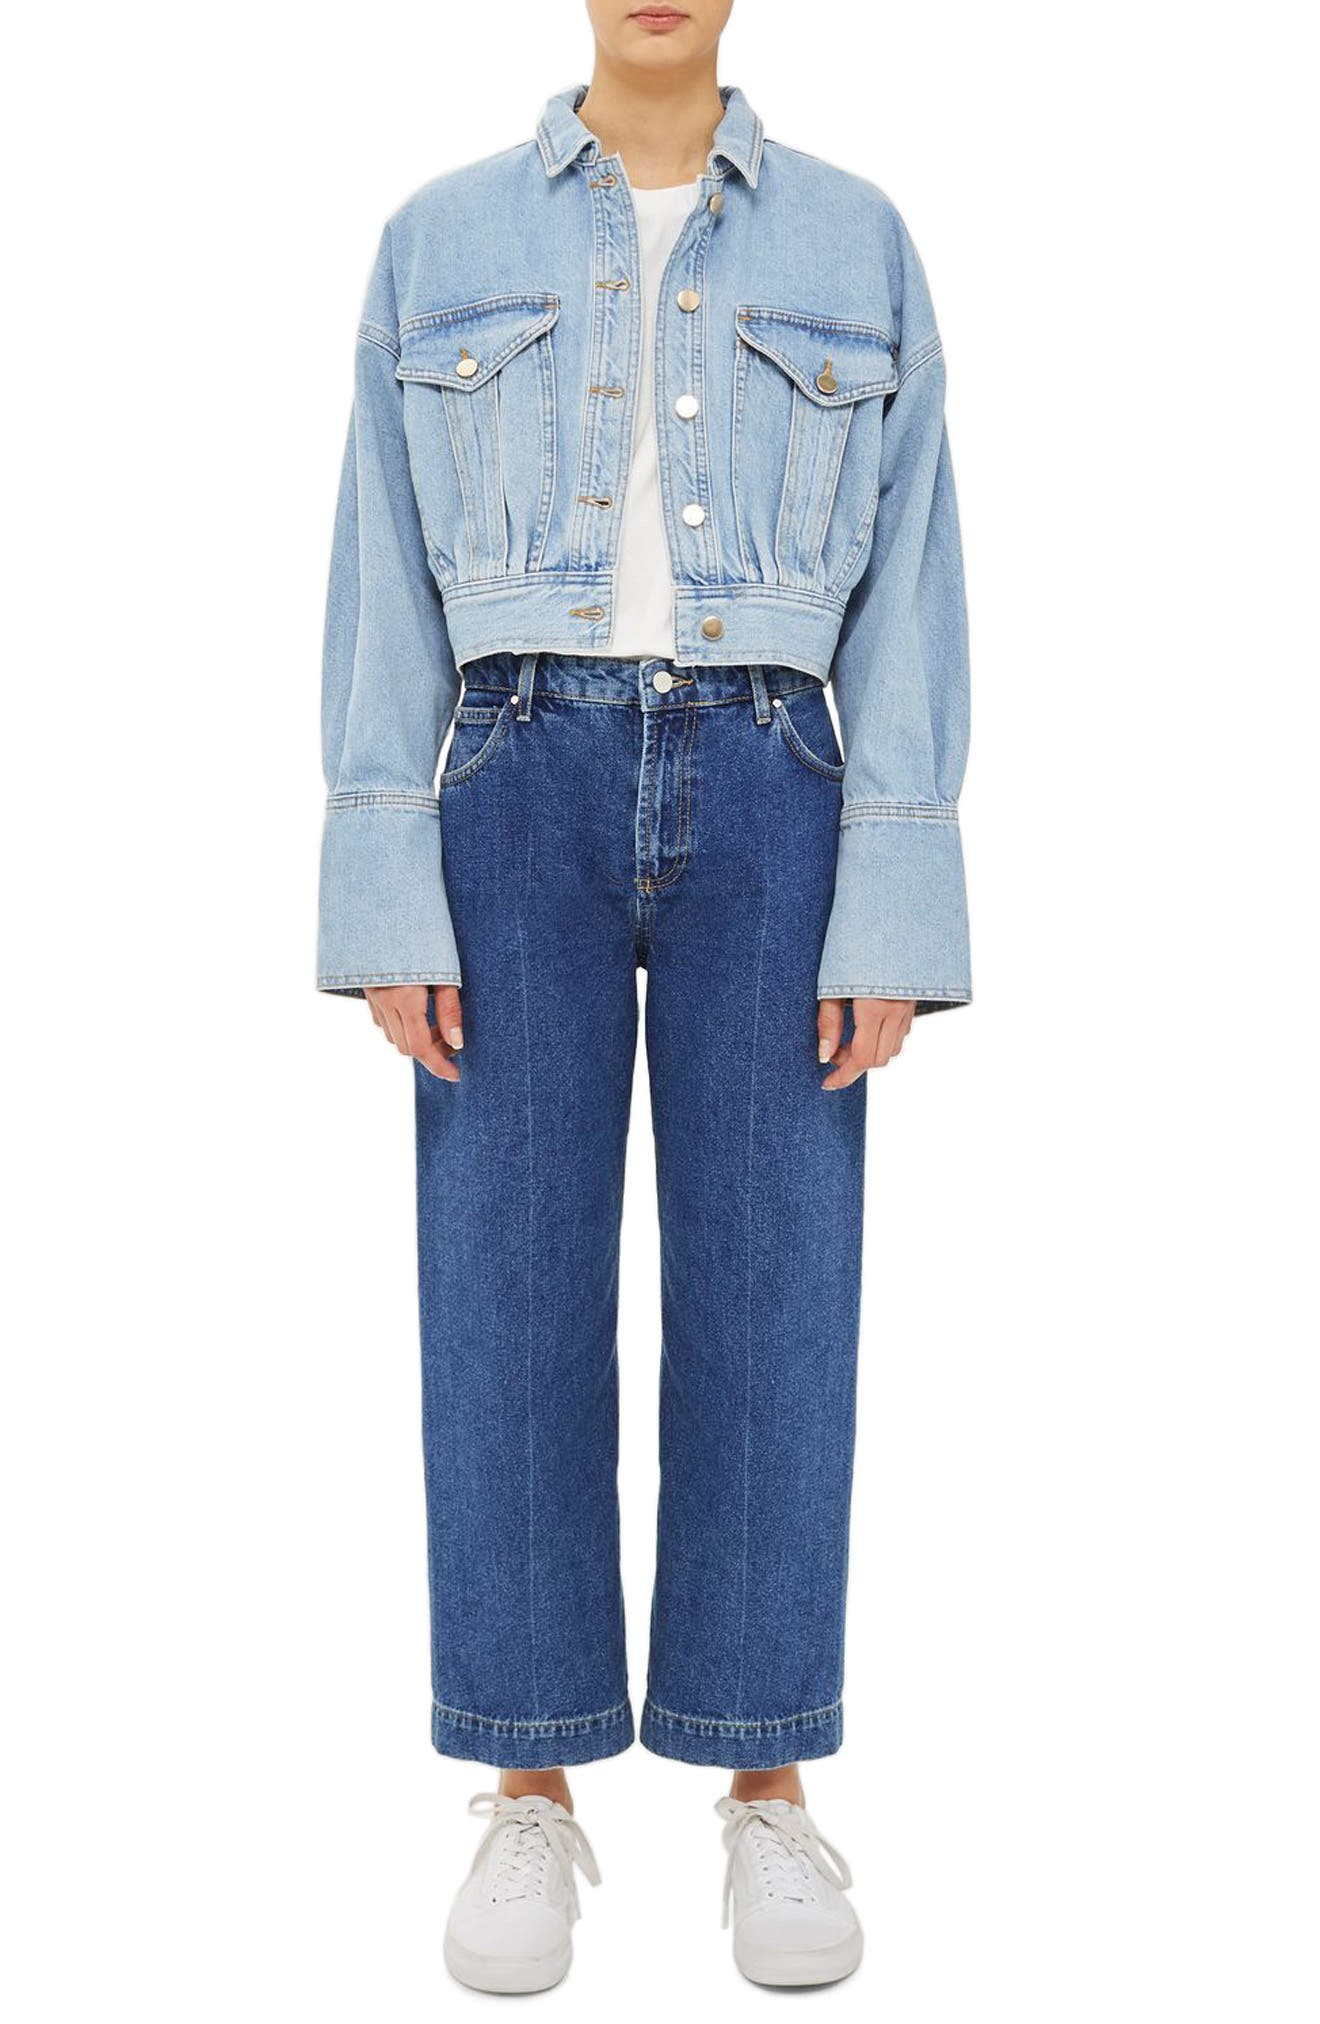 TOPSHOP BOUTIQUE Crop Denim Jacket